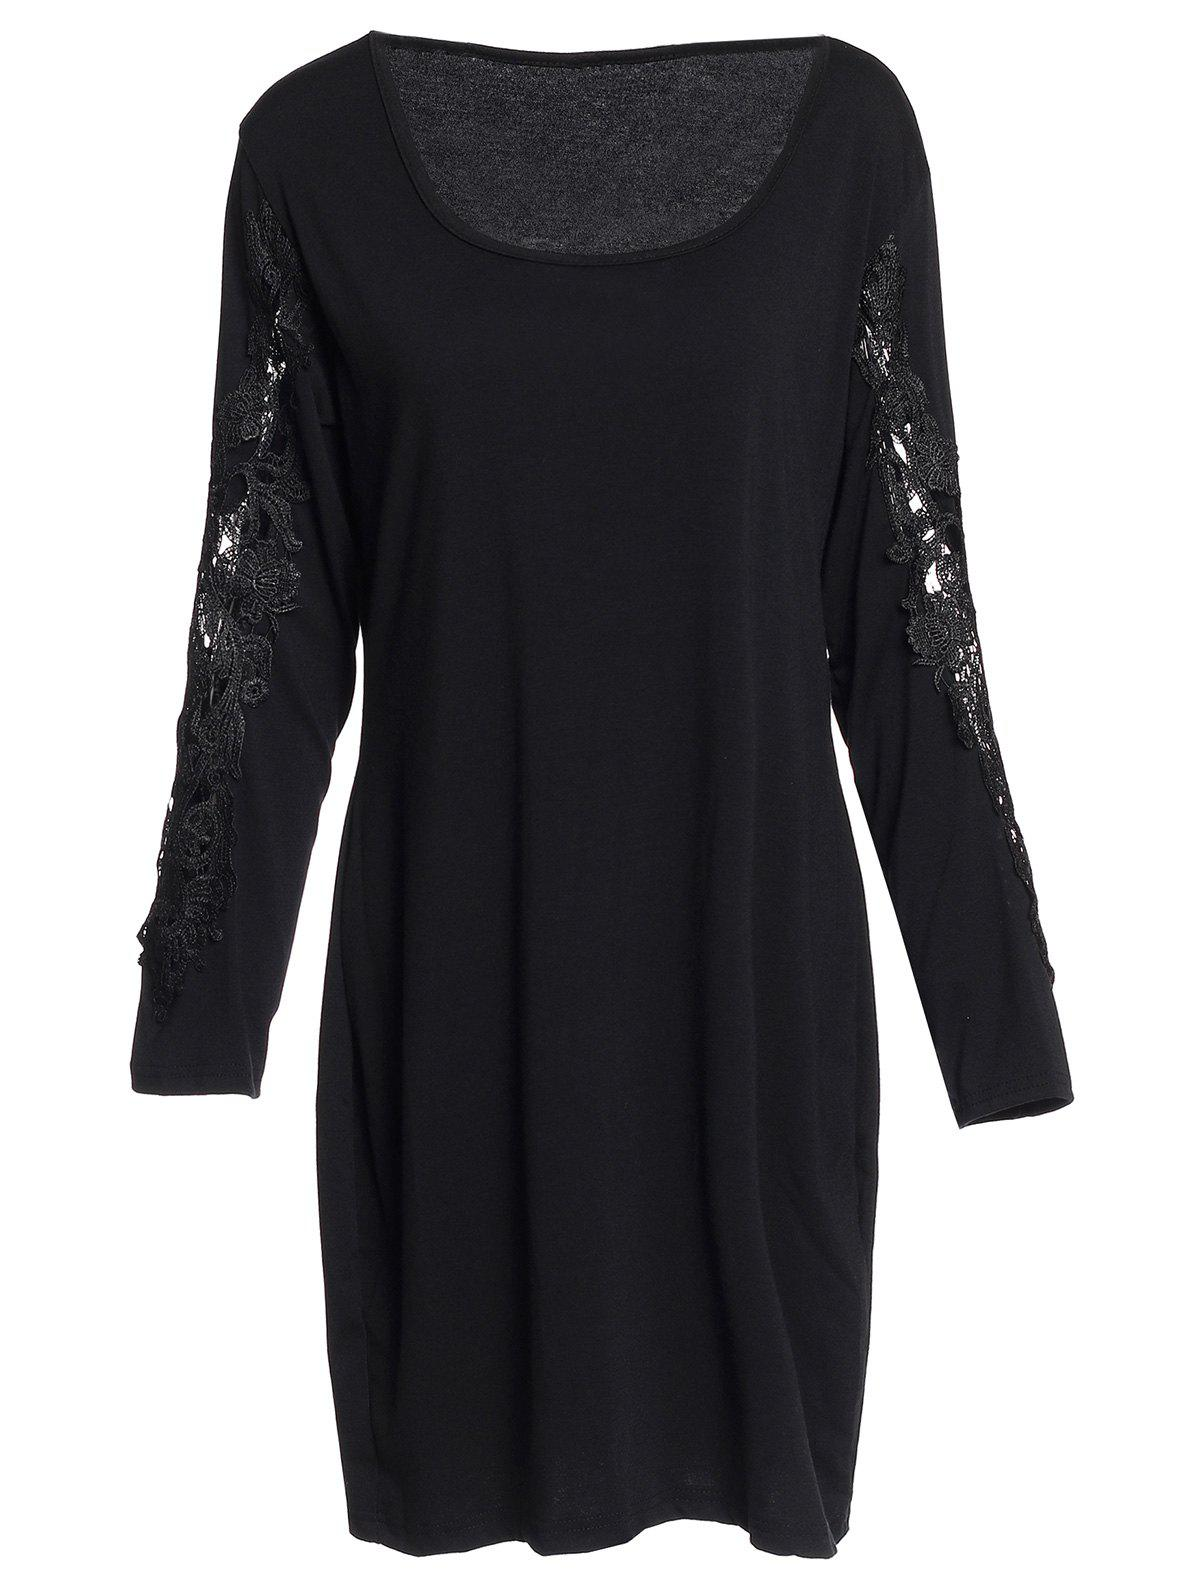 Sexy Scoop Neck Long Sleeve Plus Size Hollow Out Women's Dress - BLACK 3XL